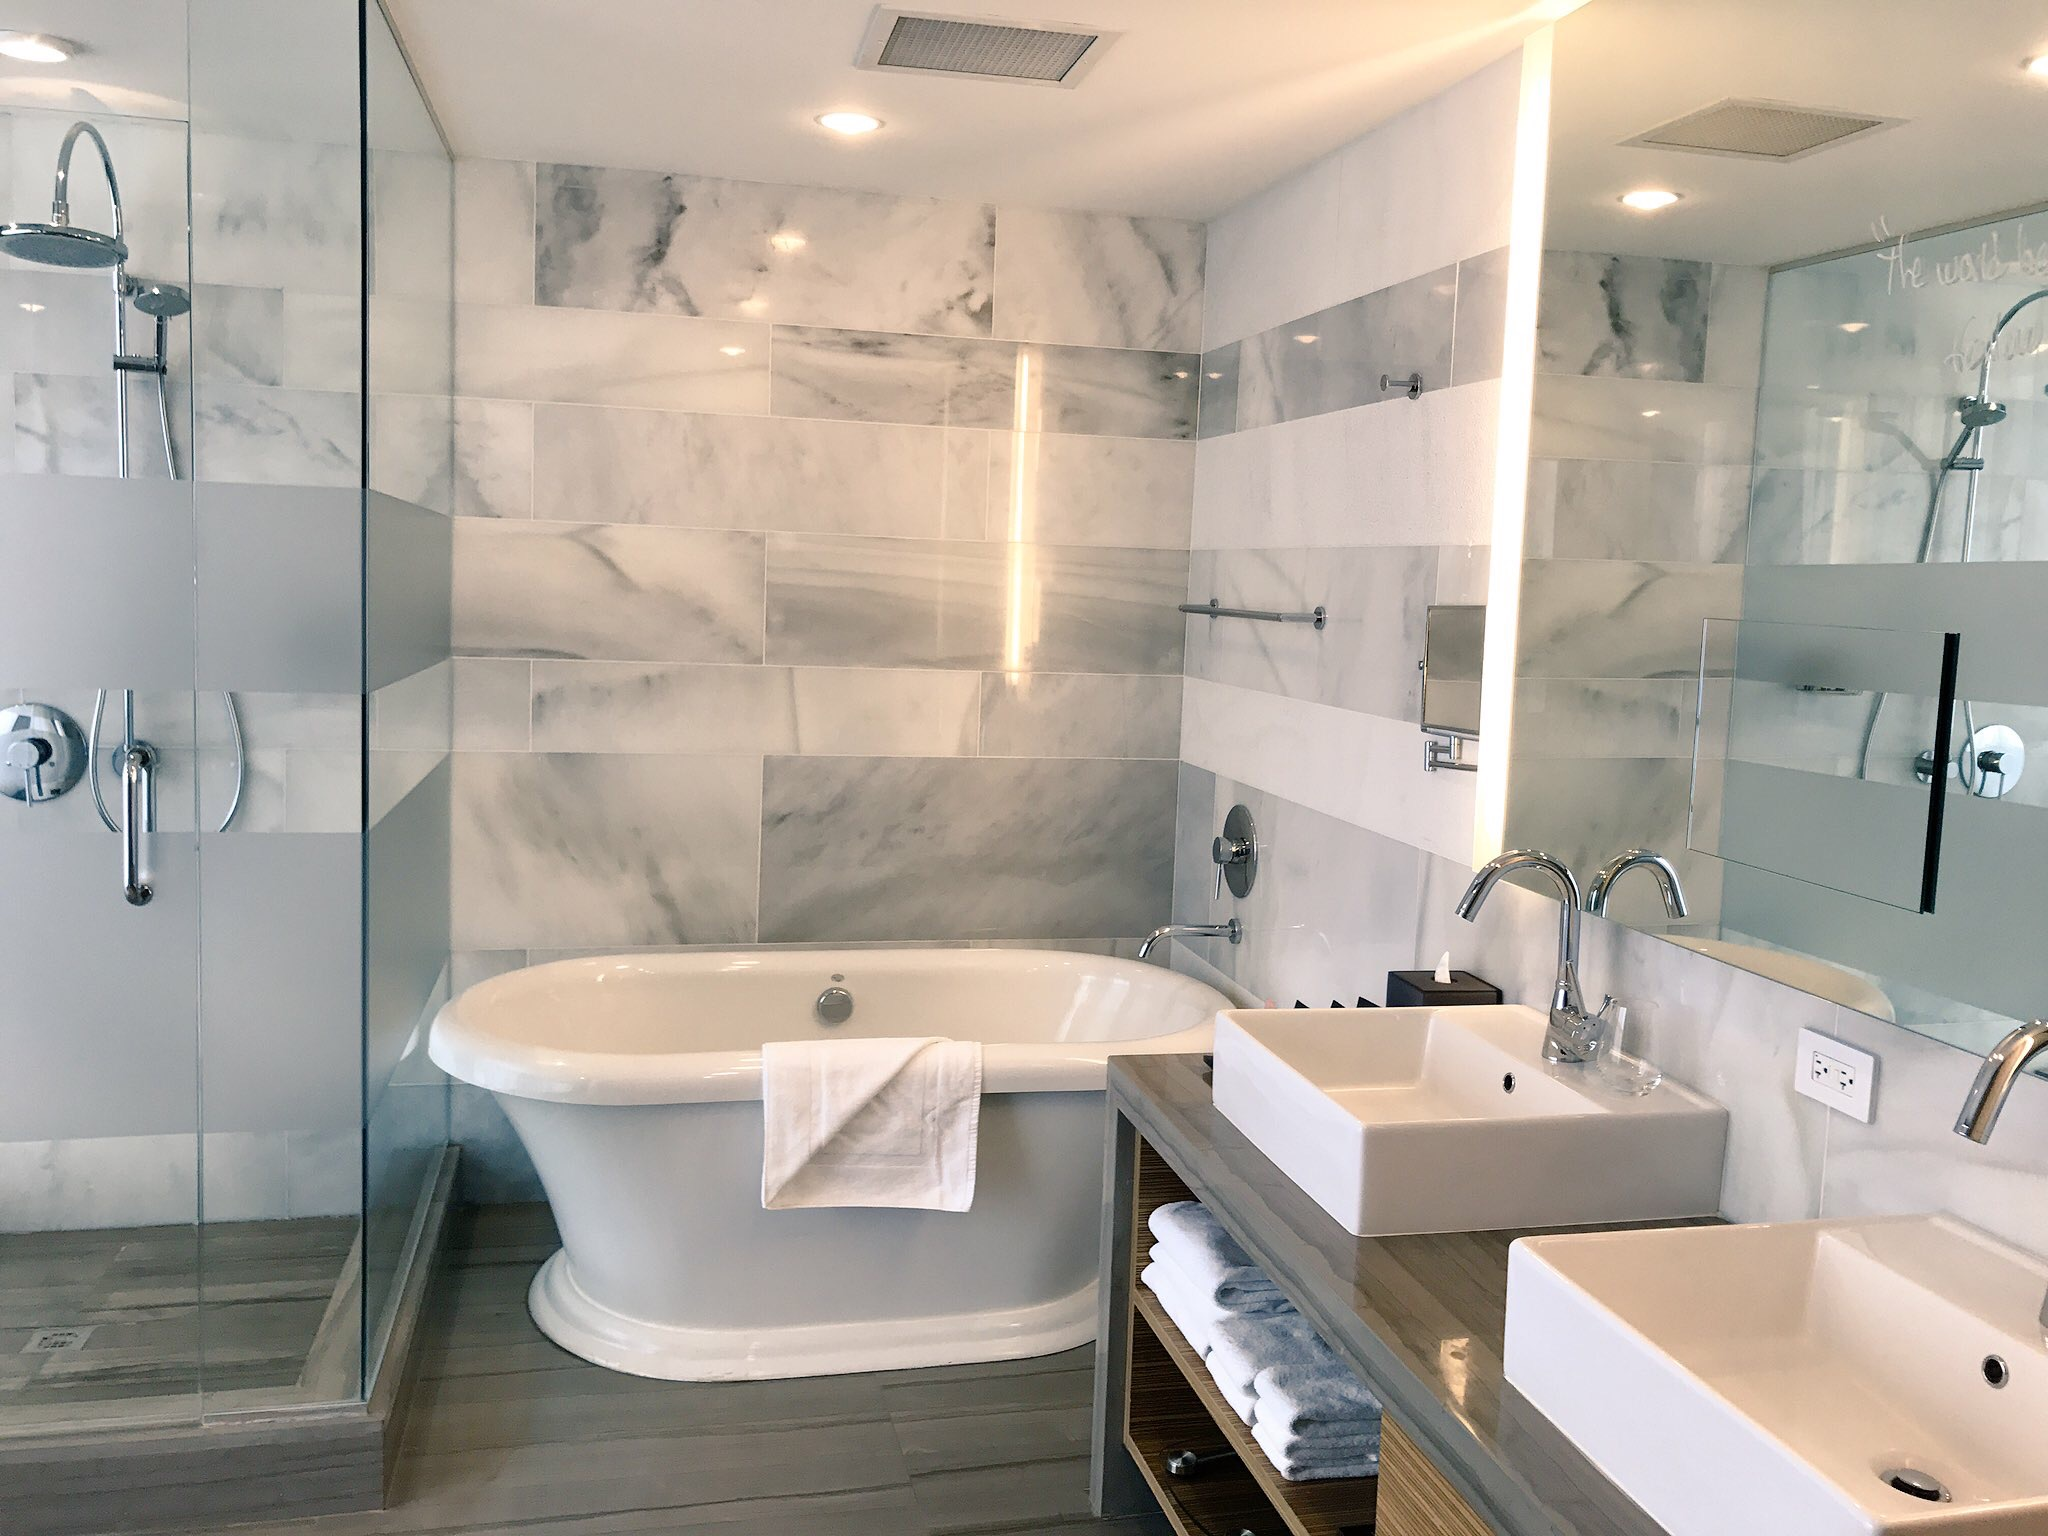 Luxury hotels usually have bathtubs  and  rain showers (and bidets if you're into it).